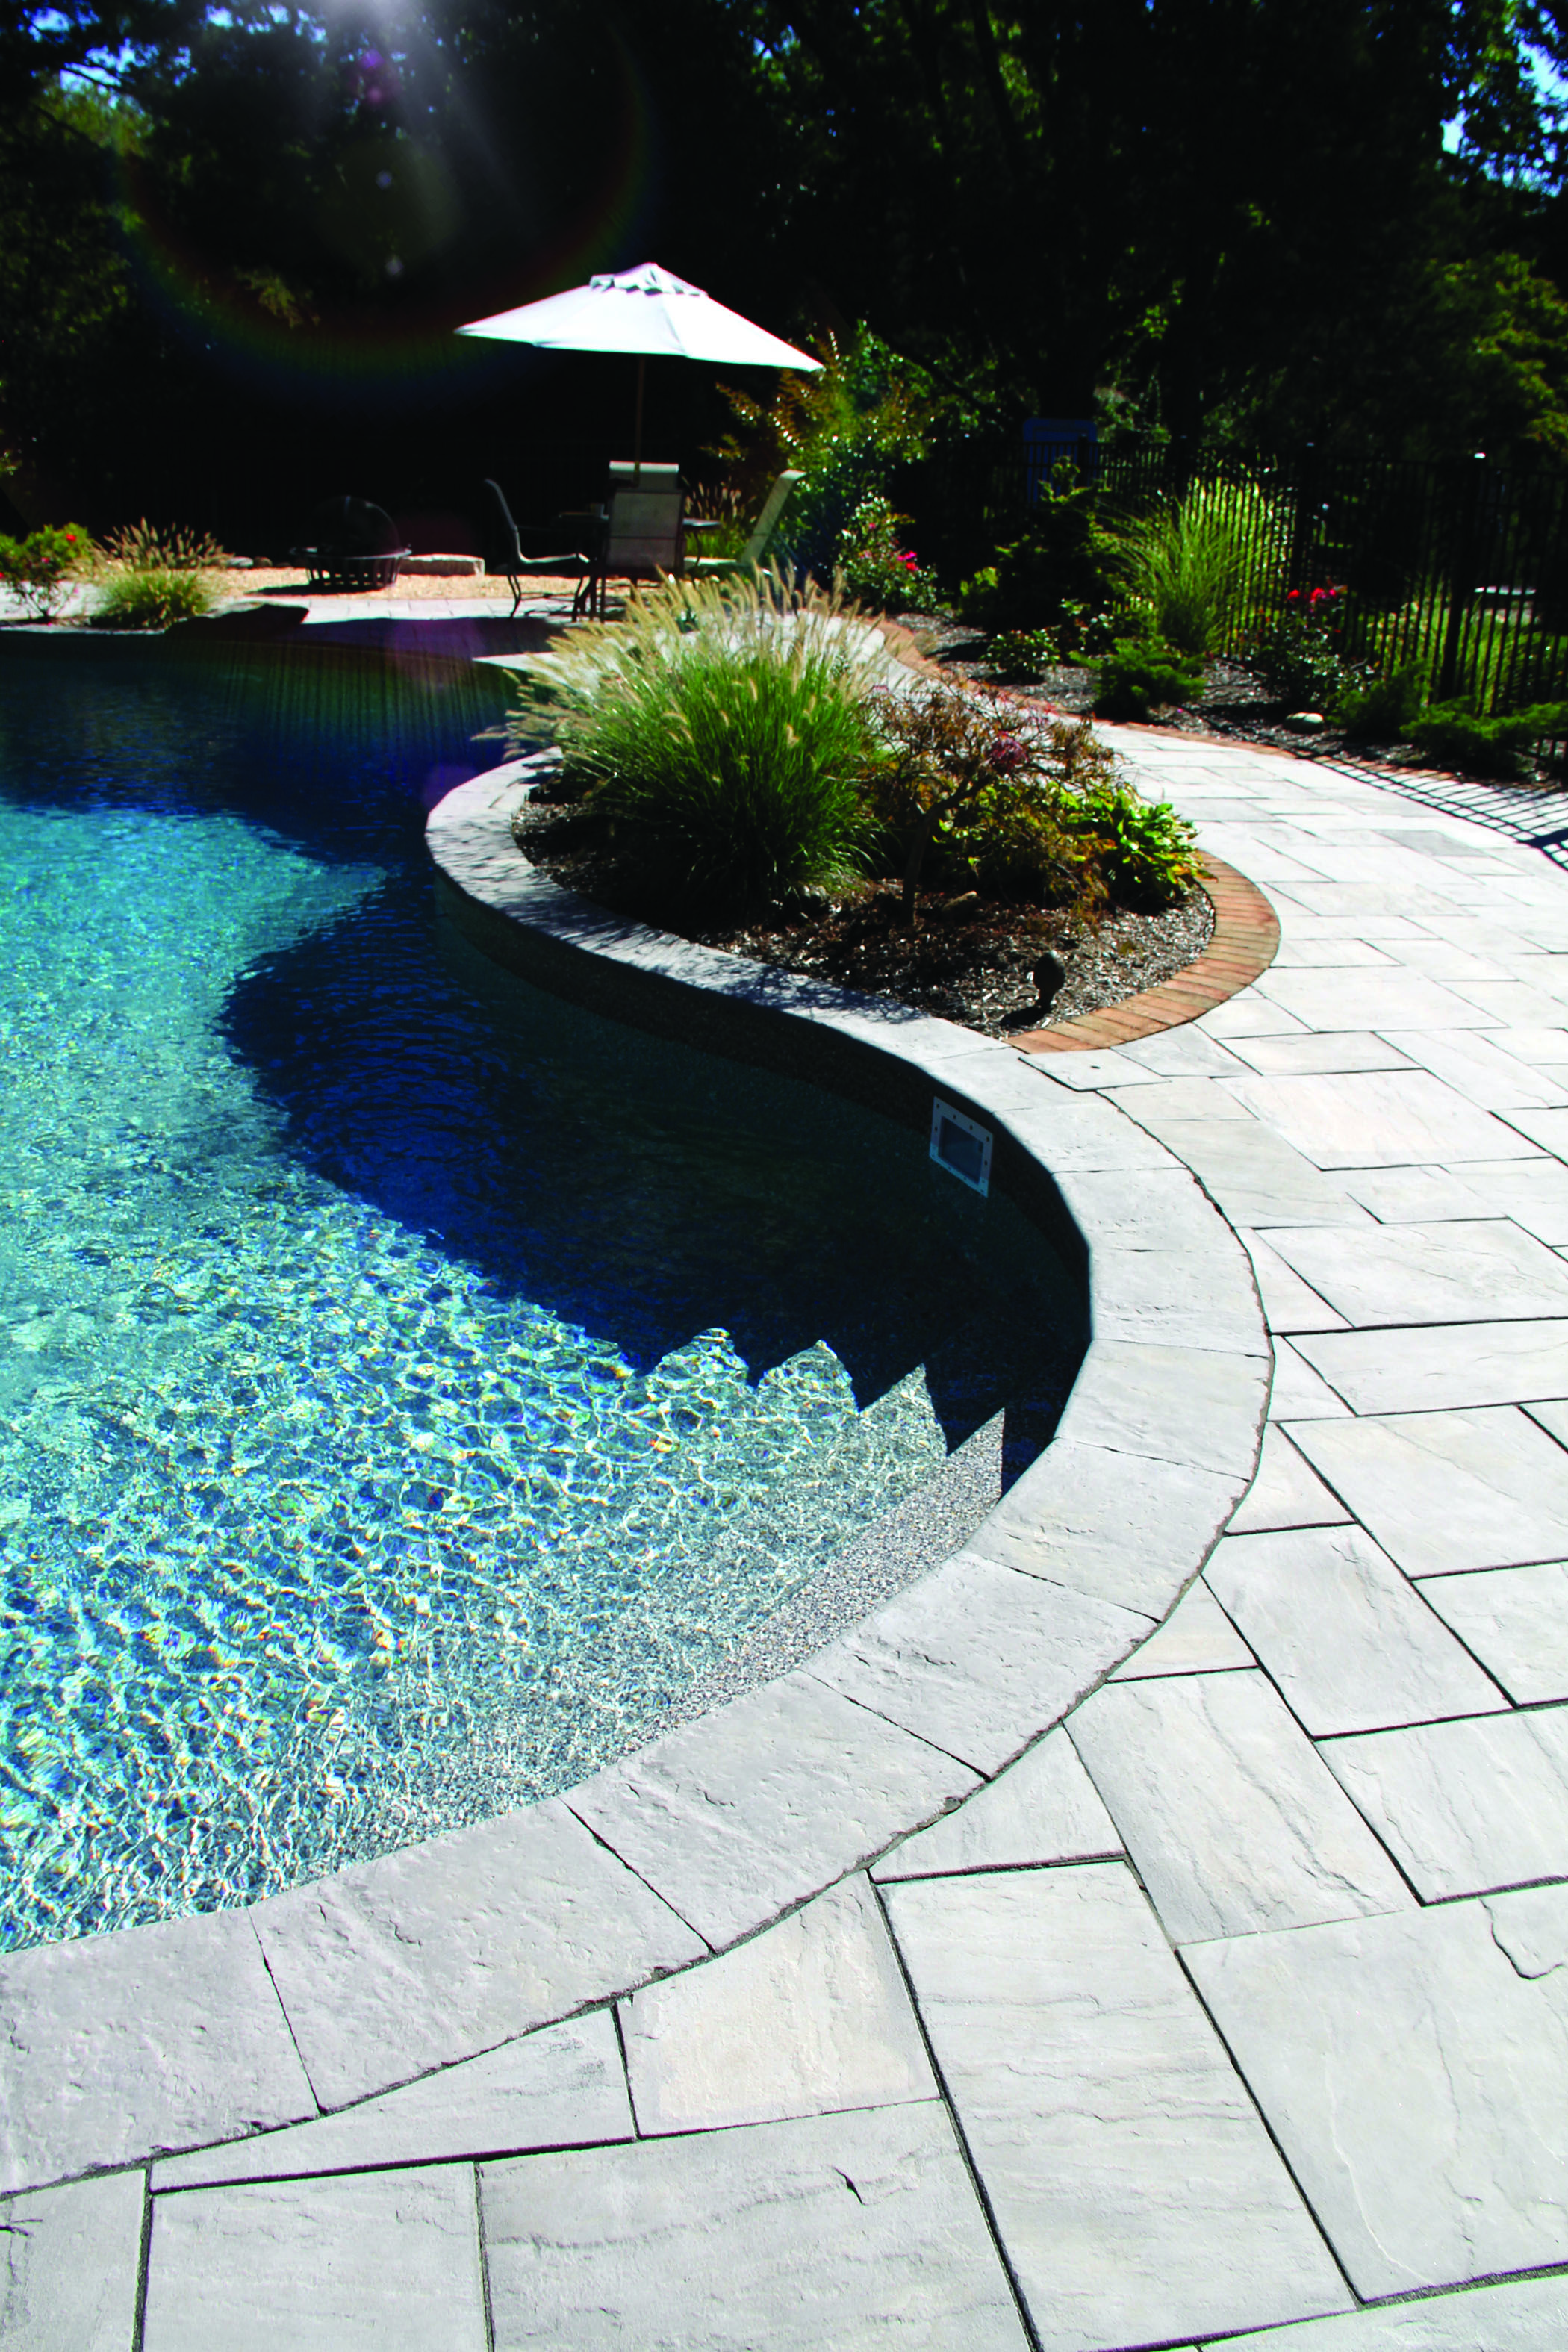 Pool Surrounded By Old Town Pool Coping In Bluestone Nicolock